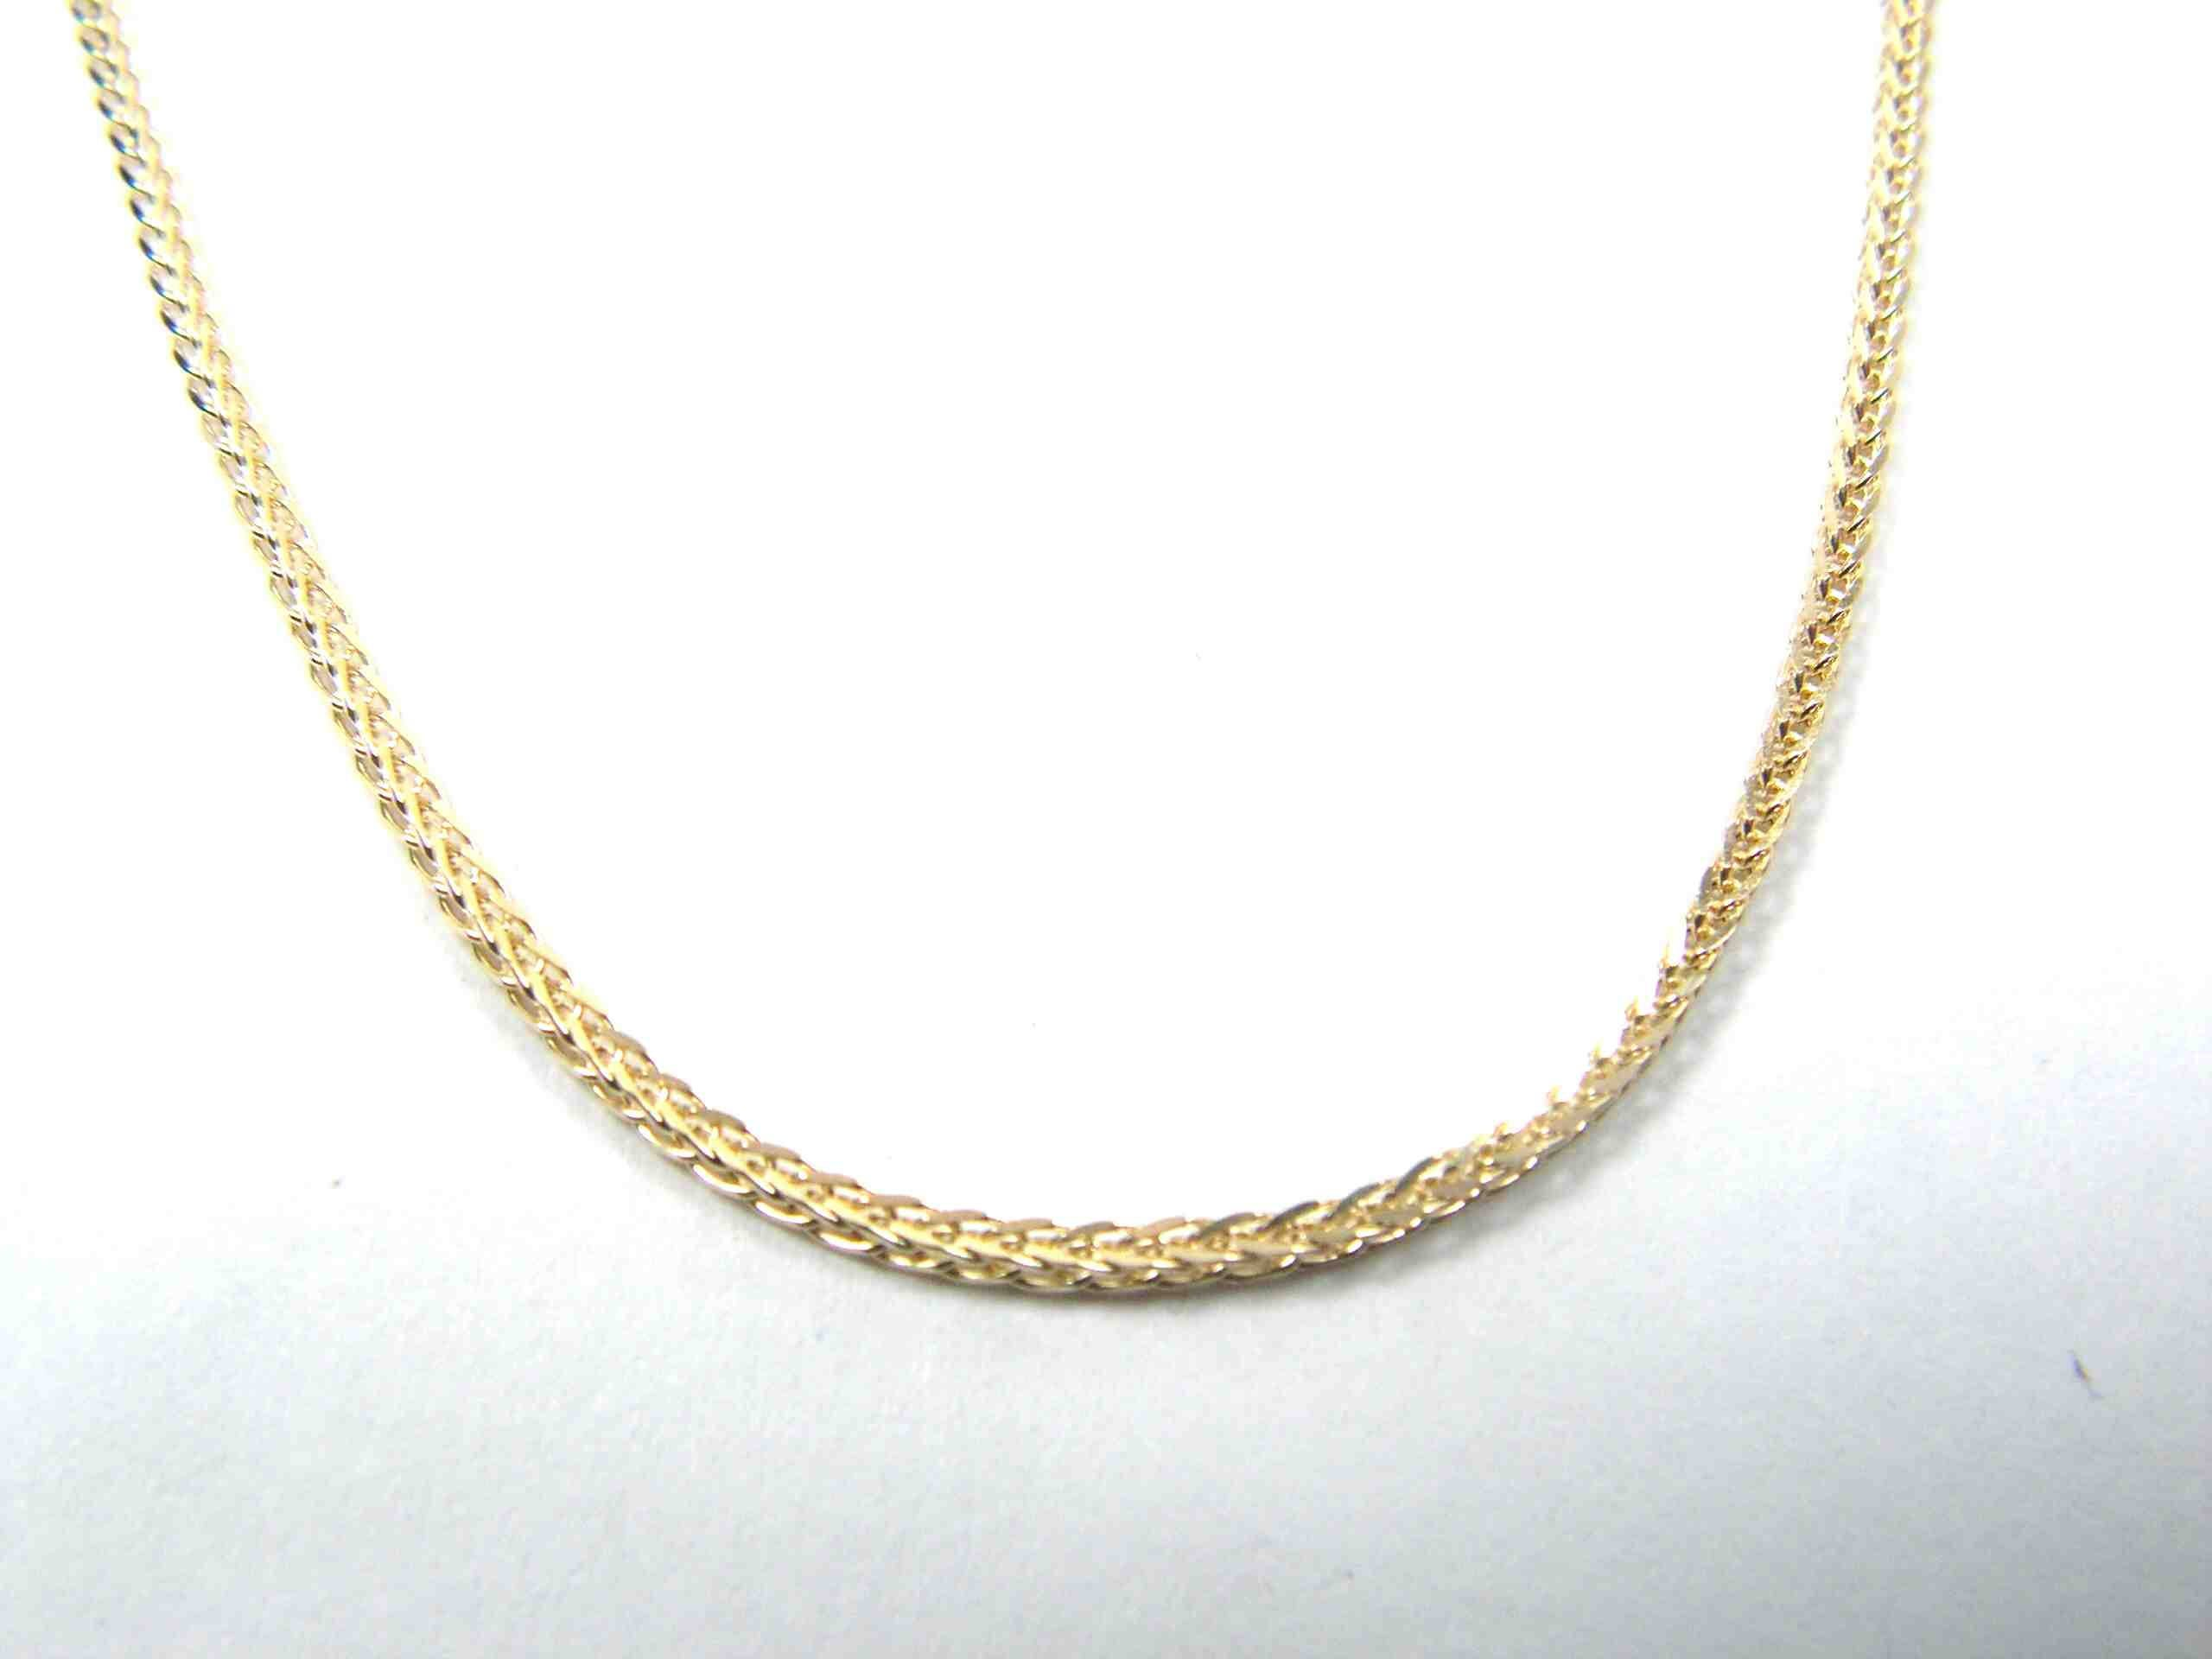 gonzales products gold cecilia norbu rosetta necklace